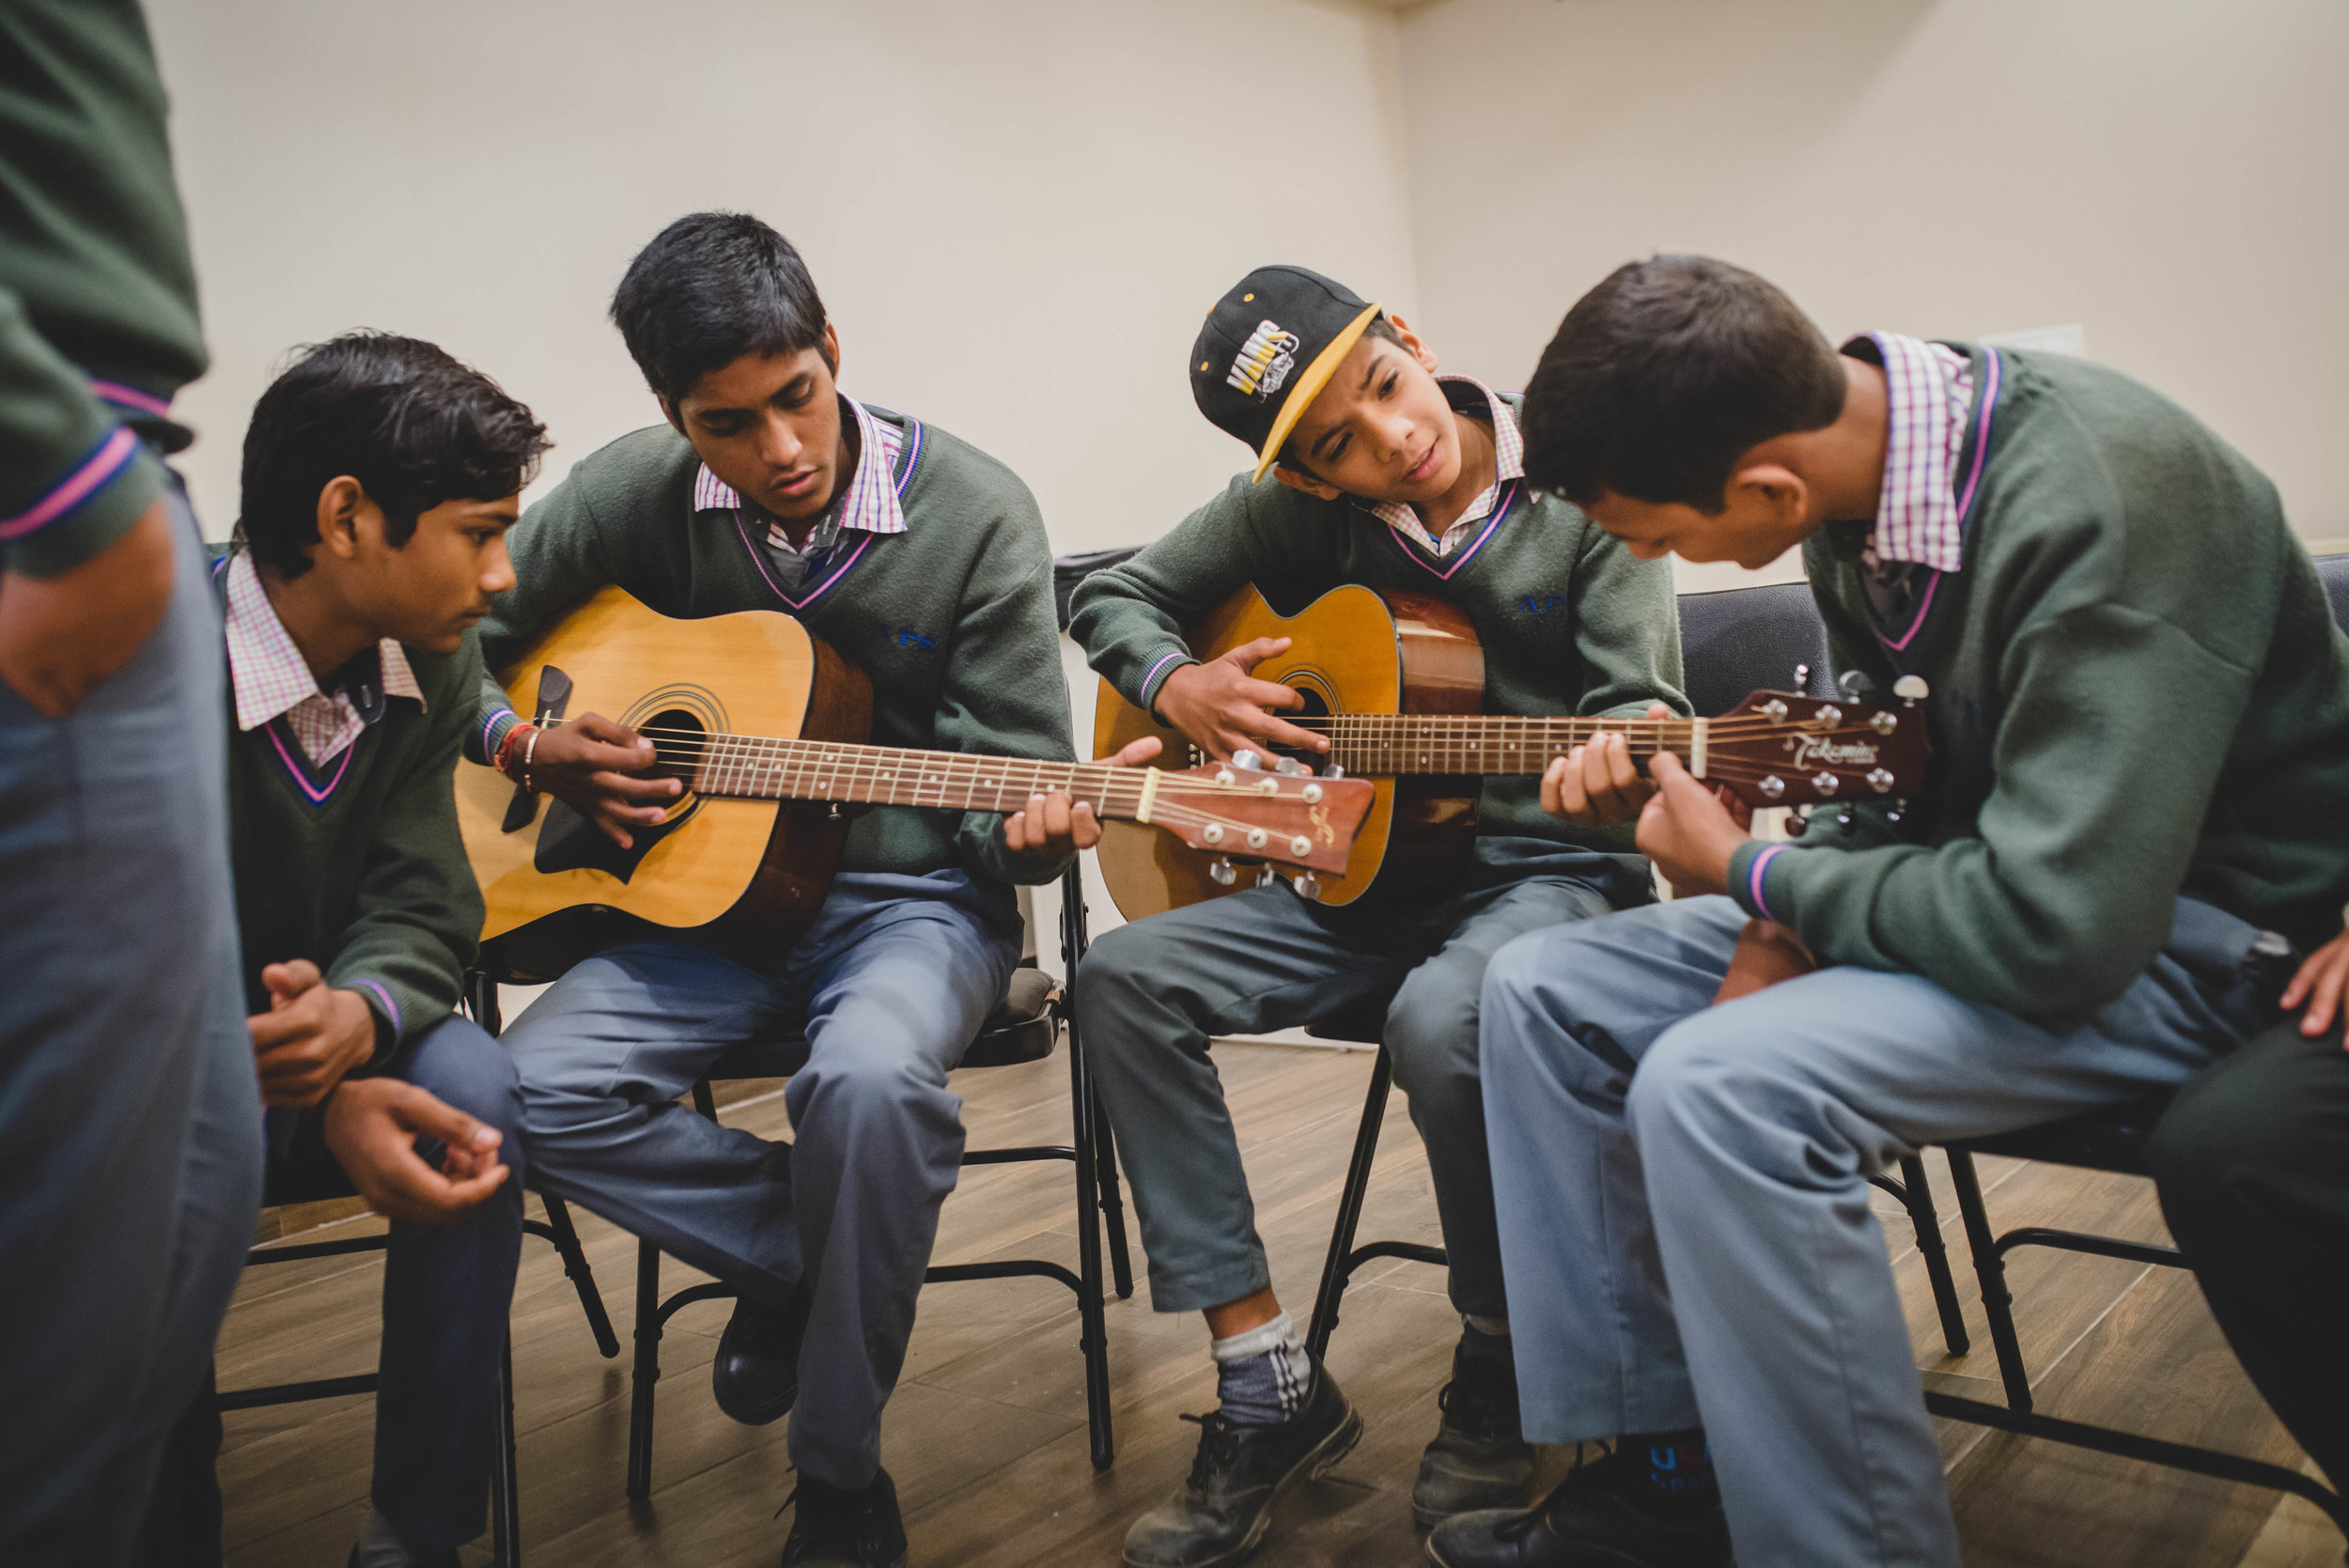 Manohar Paul teaches a music class to boys at our office in Gurgaon. Manohar approaches this class as a time not only to teach music, but also teach on topics such as stress management and character development.